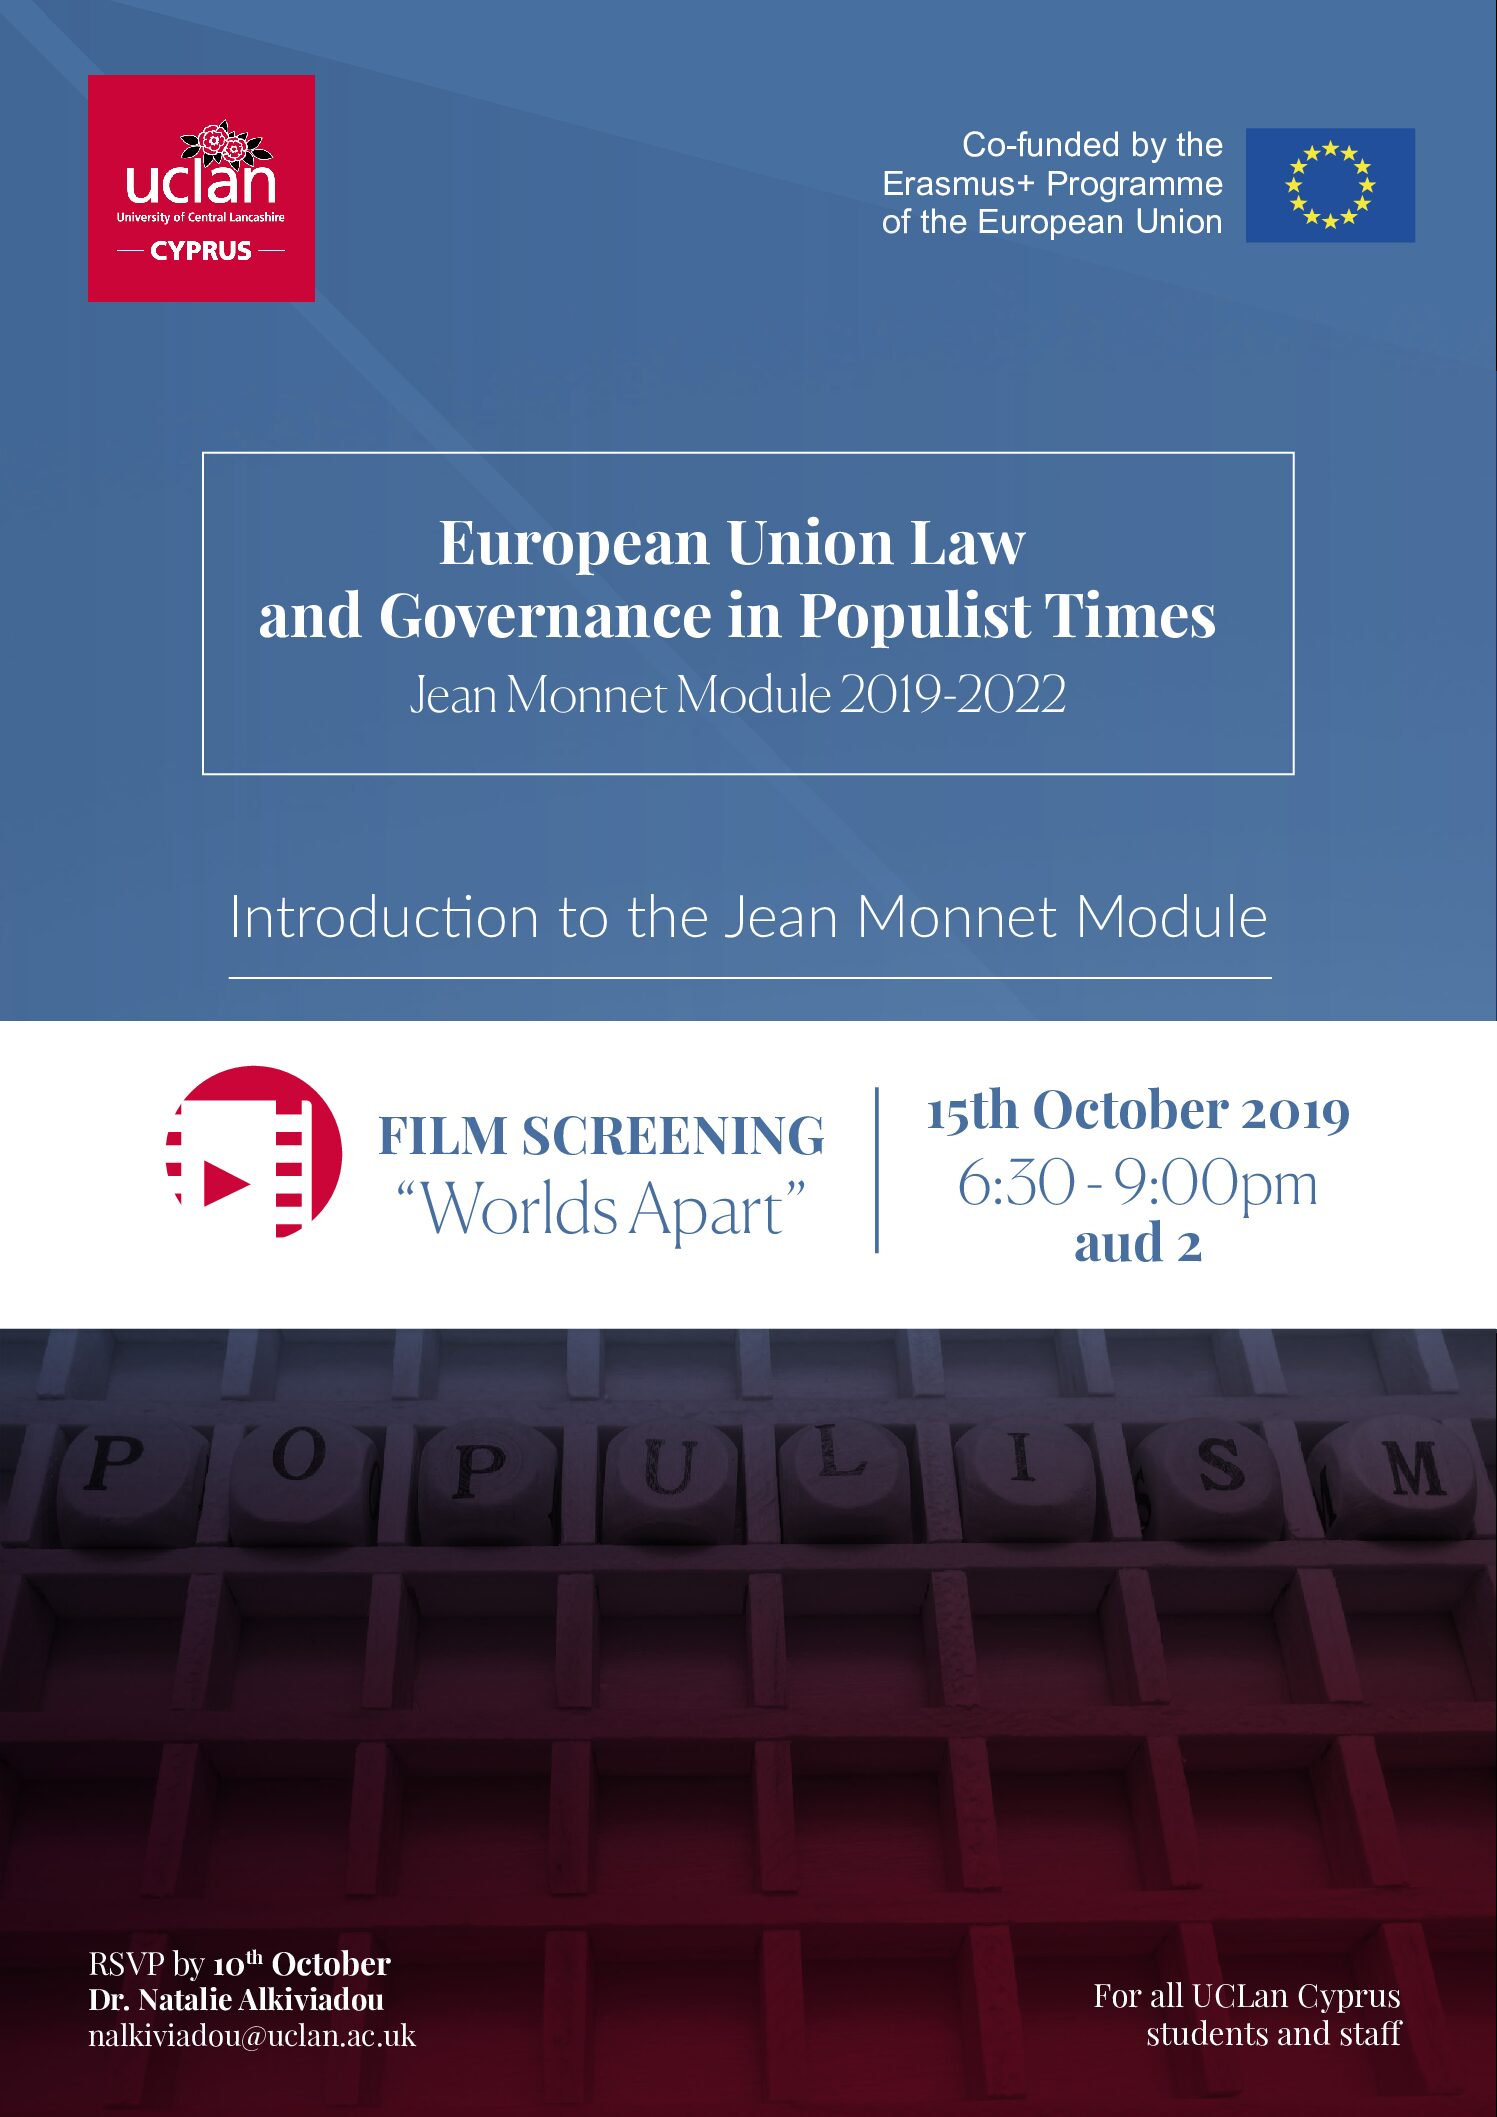 European Union Law and Governance in Populist Times Jean Monnet Module 2019-2022